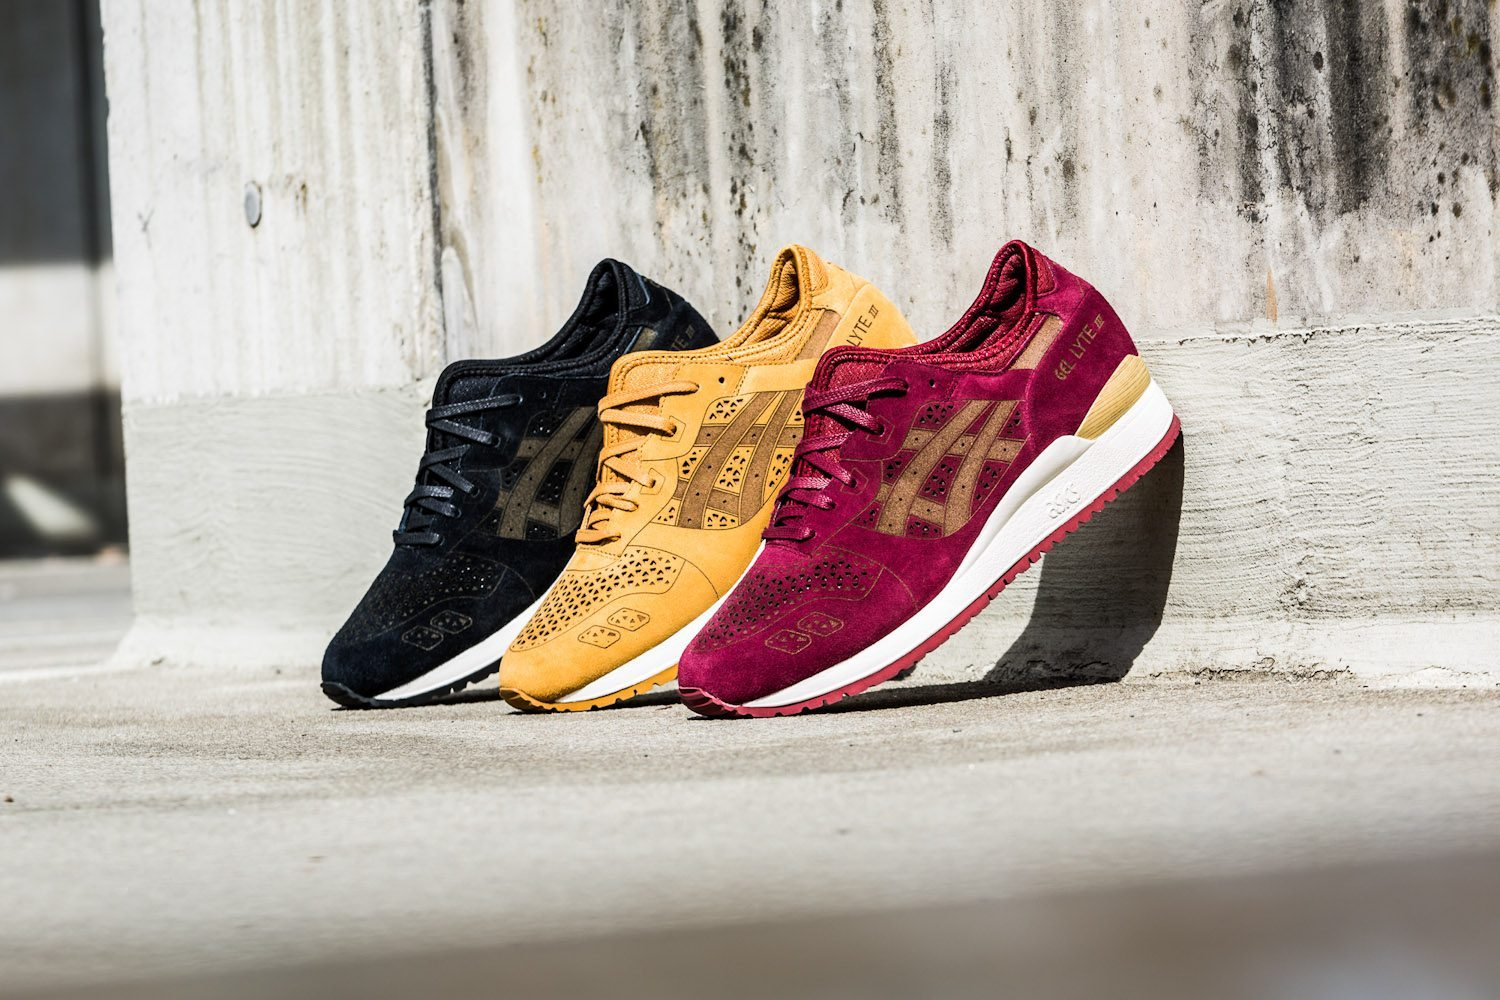 Asics Gel Lyte III Laser Cut Pack 1